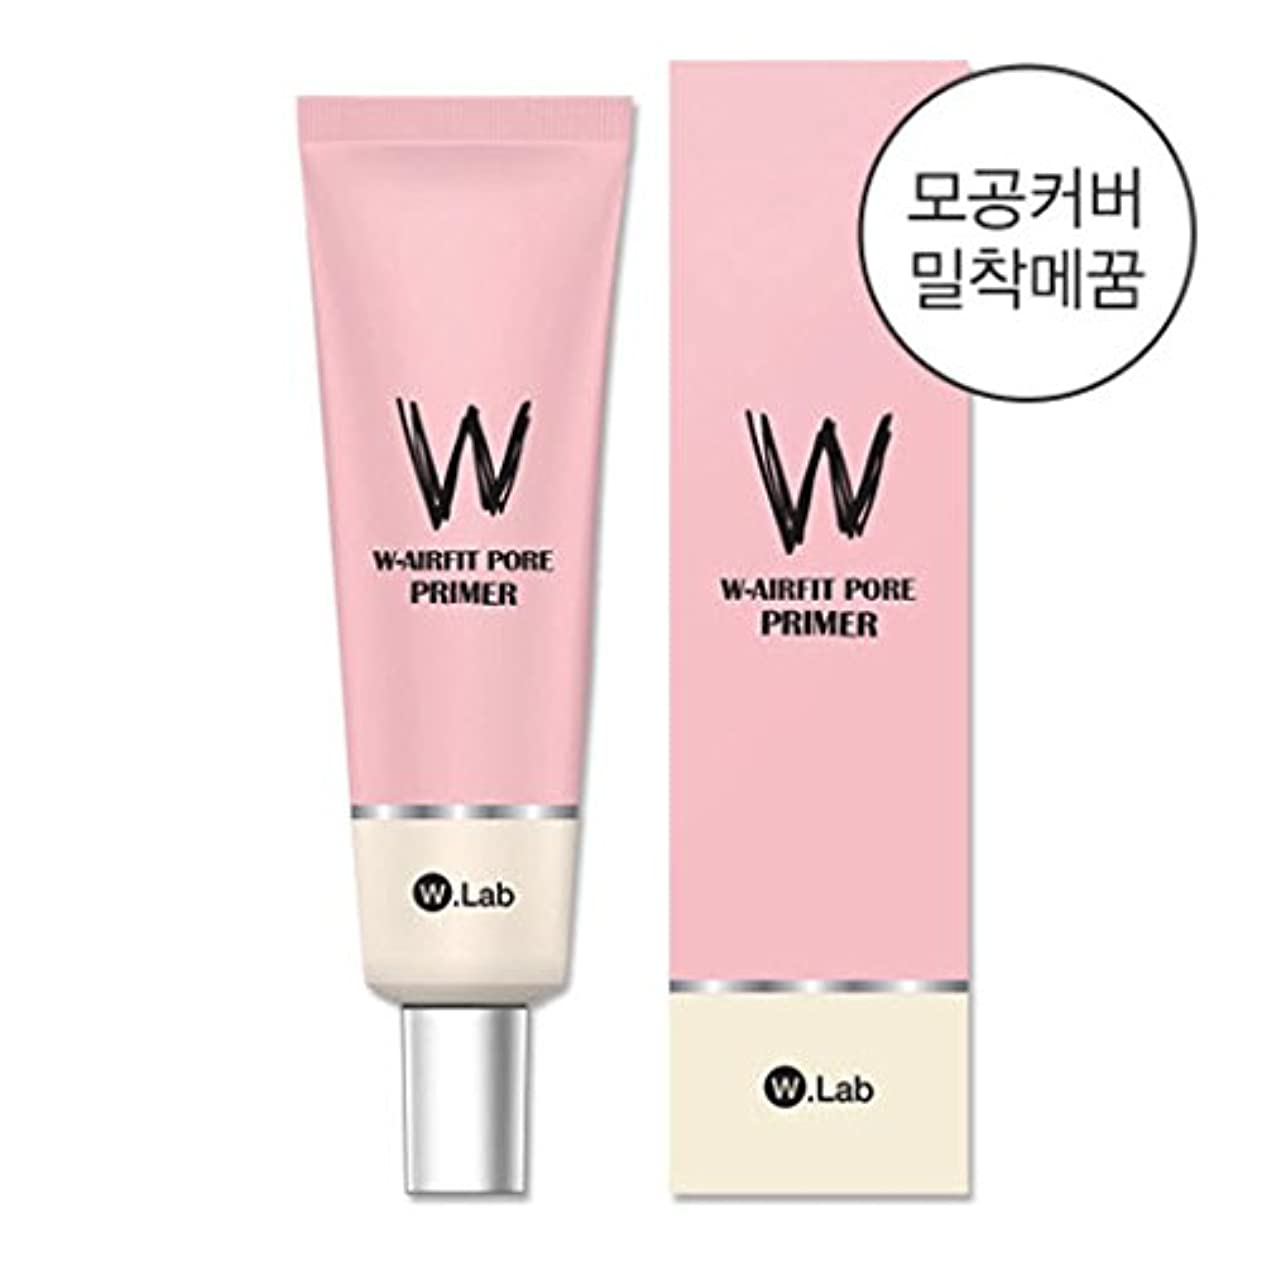 すすり泣き下位先生W.Lab W-Airfit Pore Primer 35g [parallel import goods]